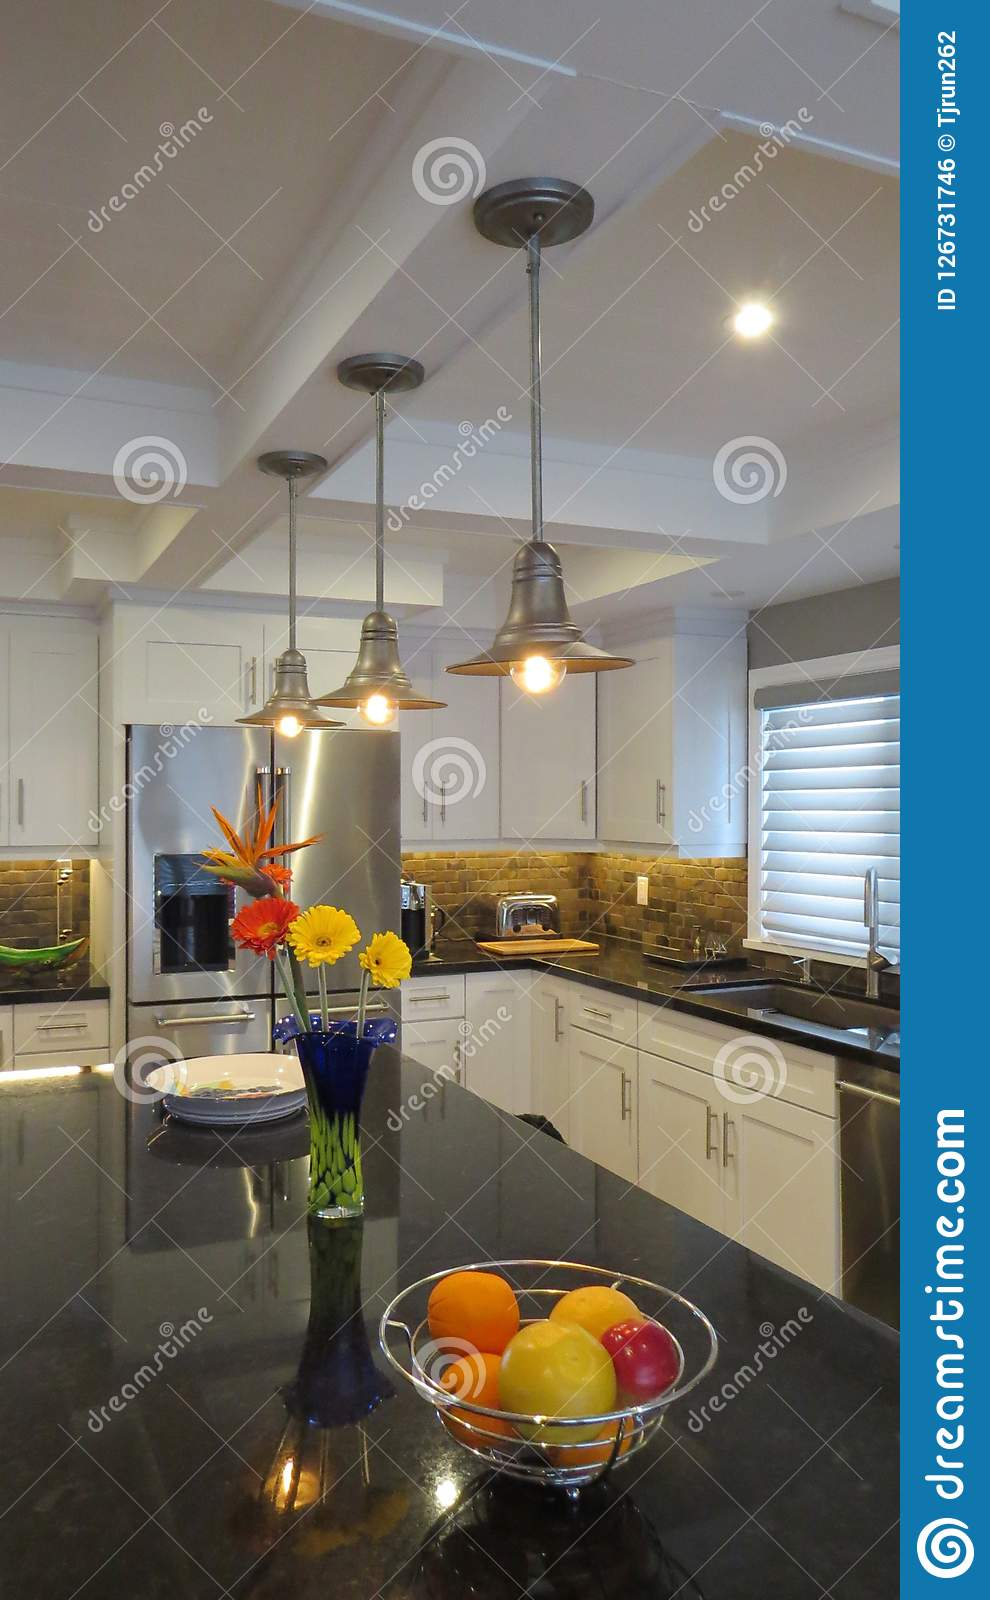 Modern Kitchen With White Cabinets And Granite Countertops Stock Photo Image Of Architecture Modern 126731746